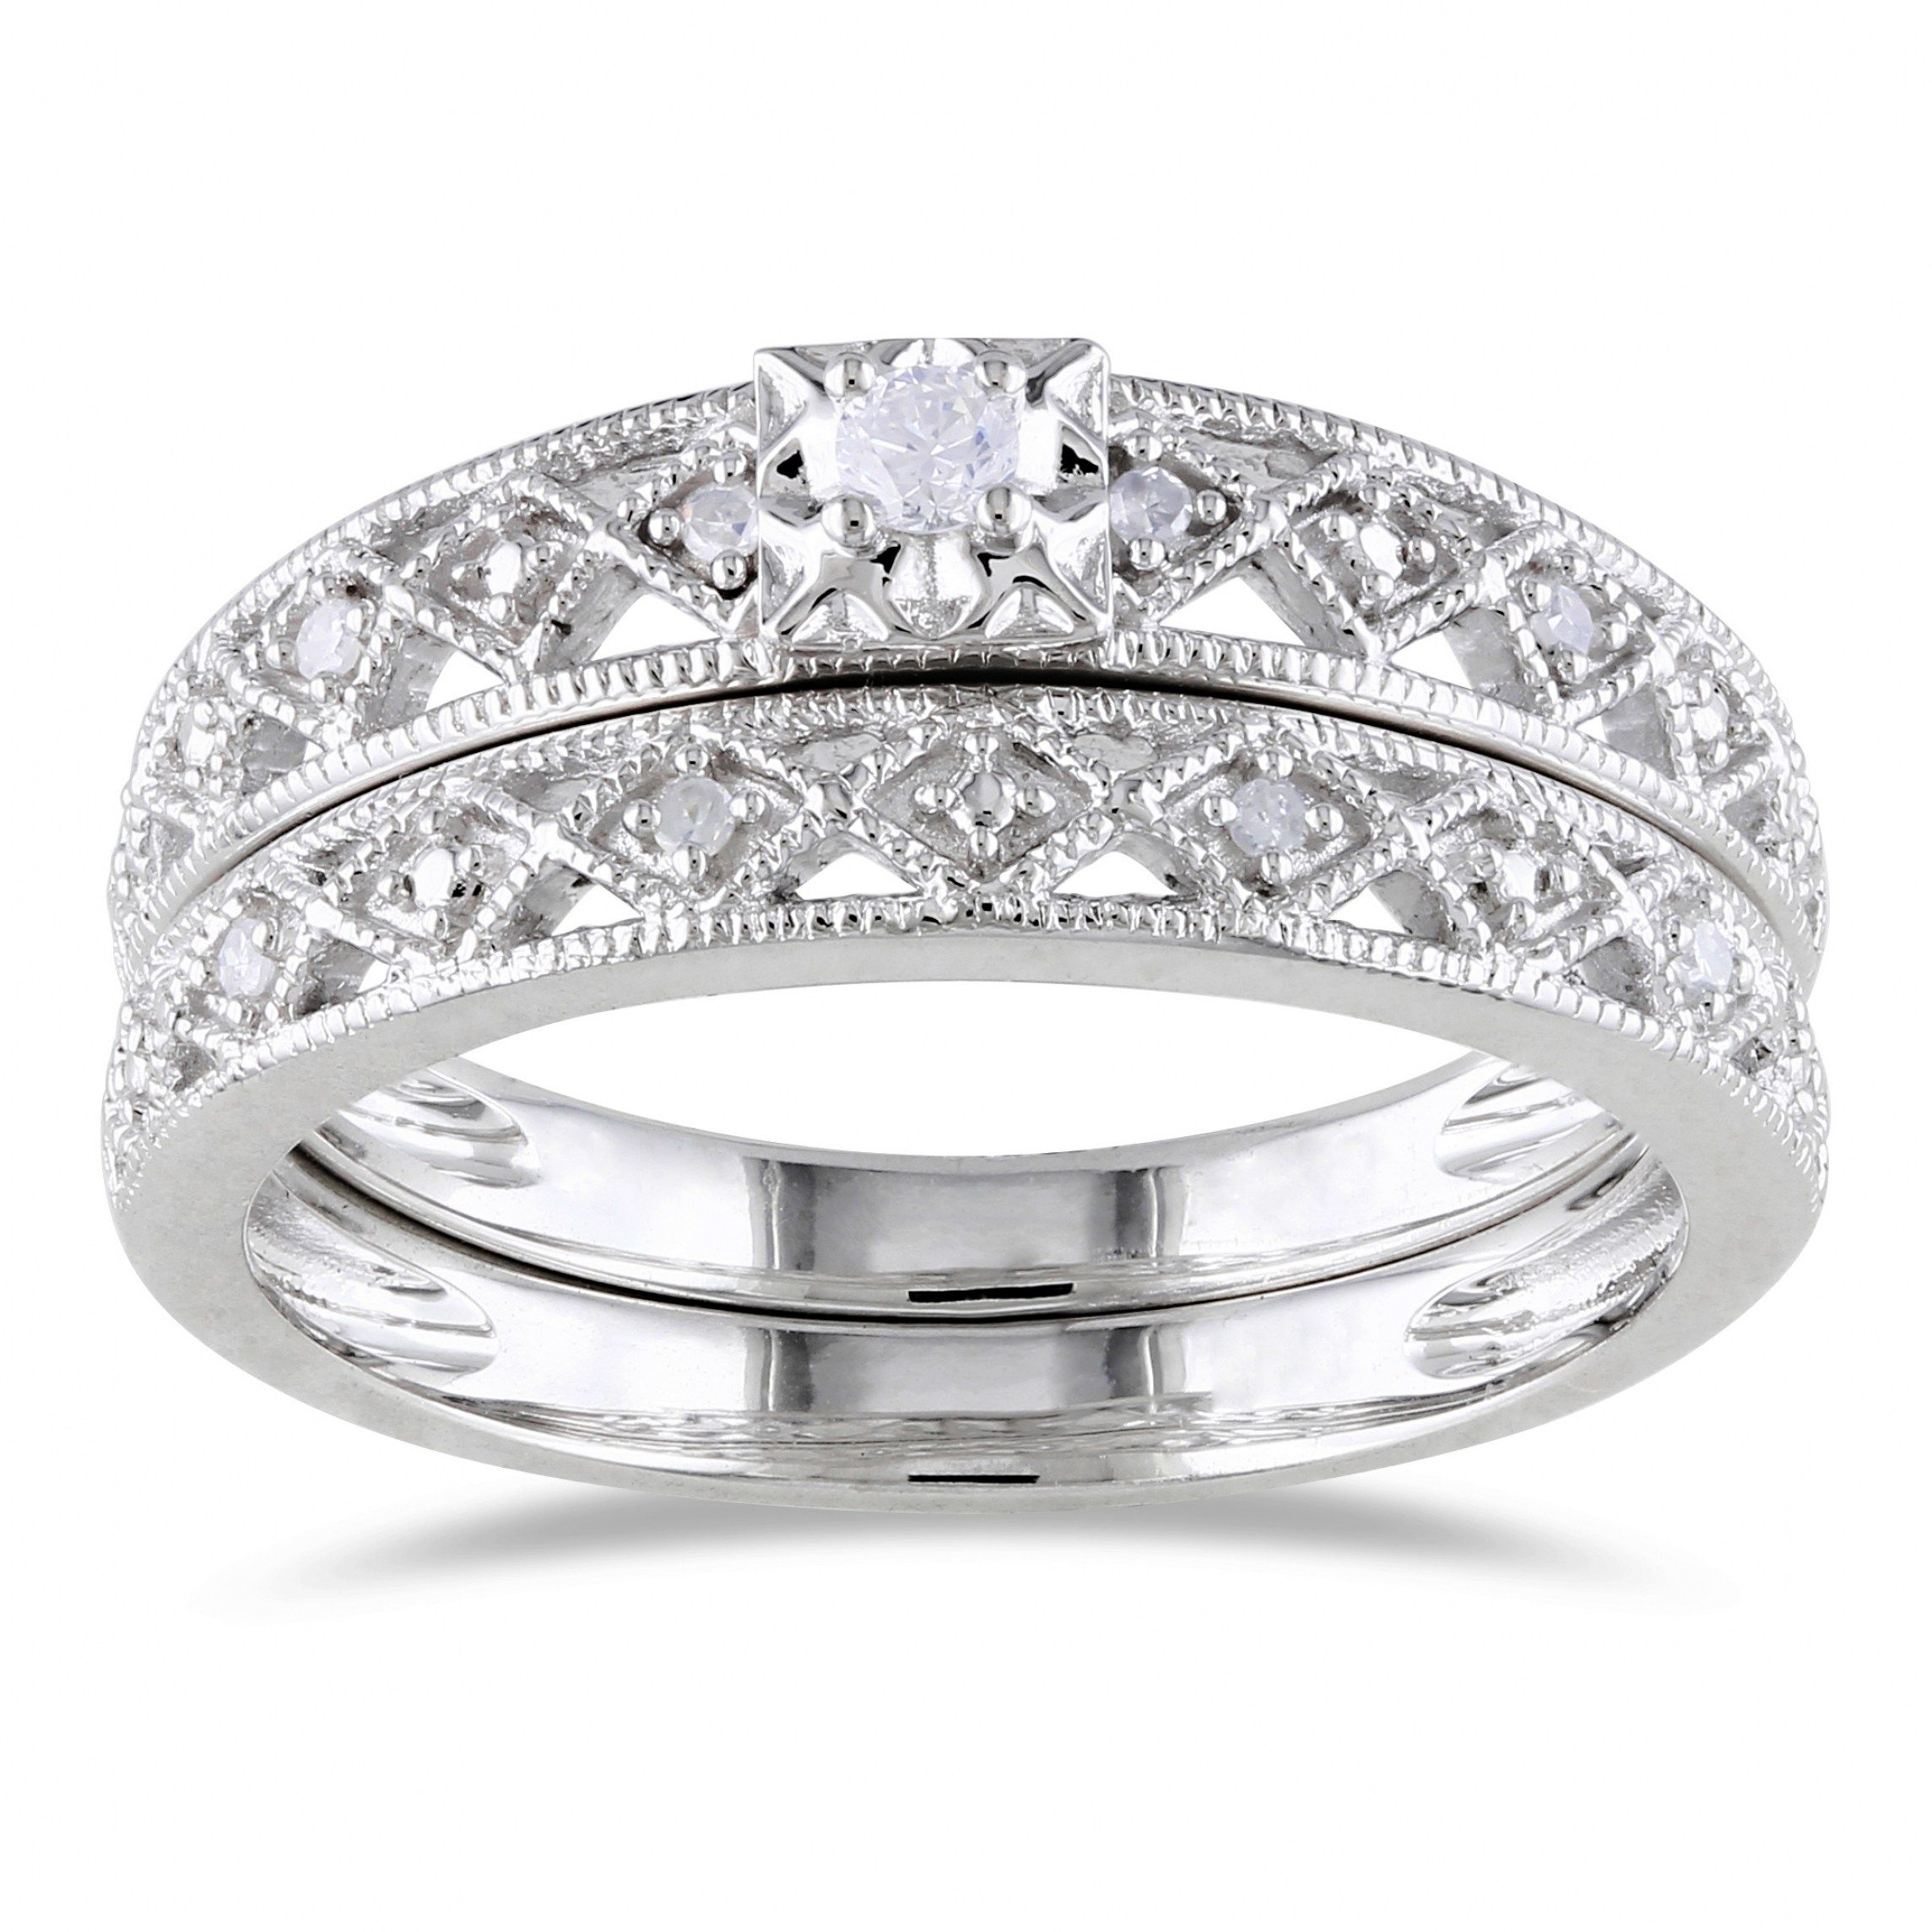 32 Stunning Silver Wedding Rings For Men And Women